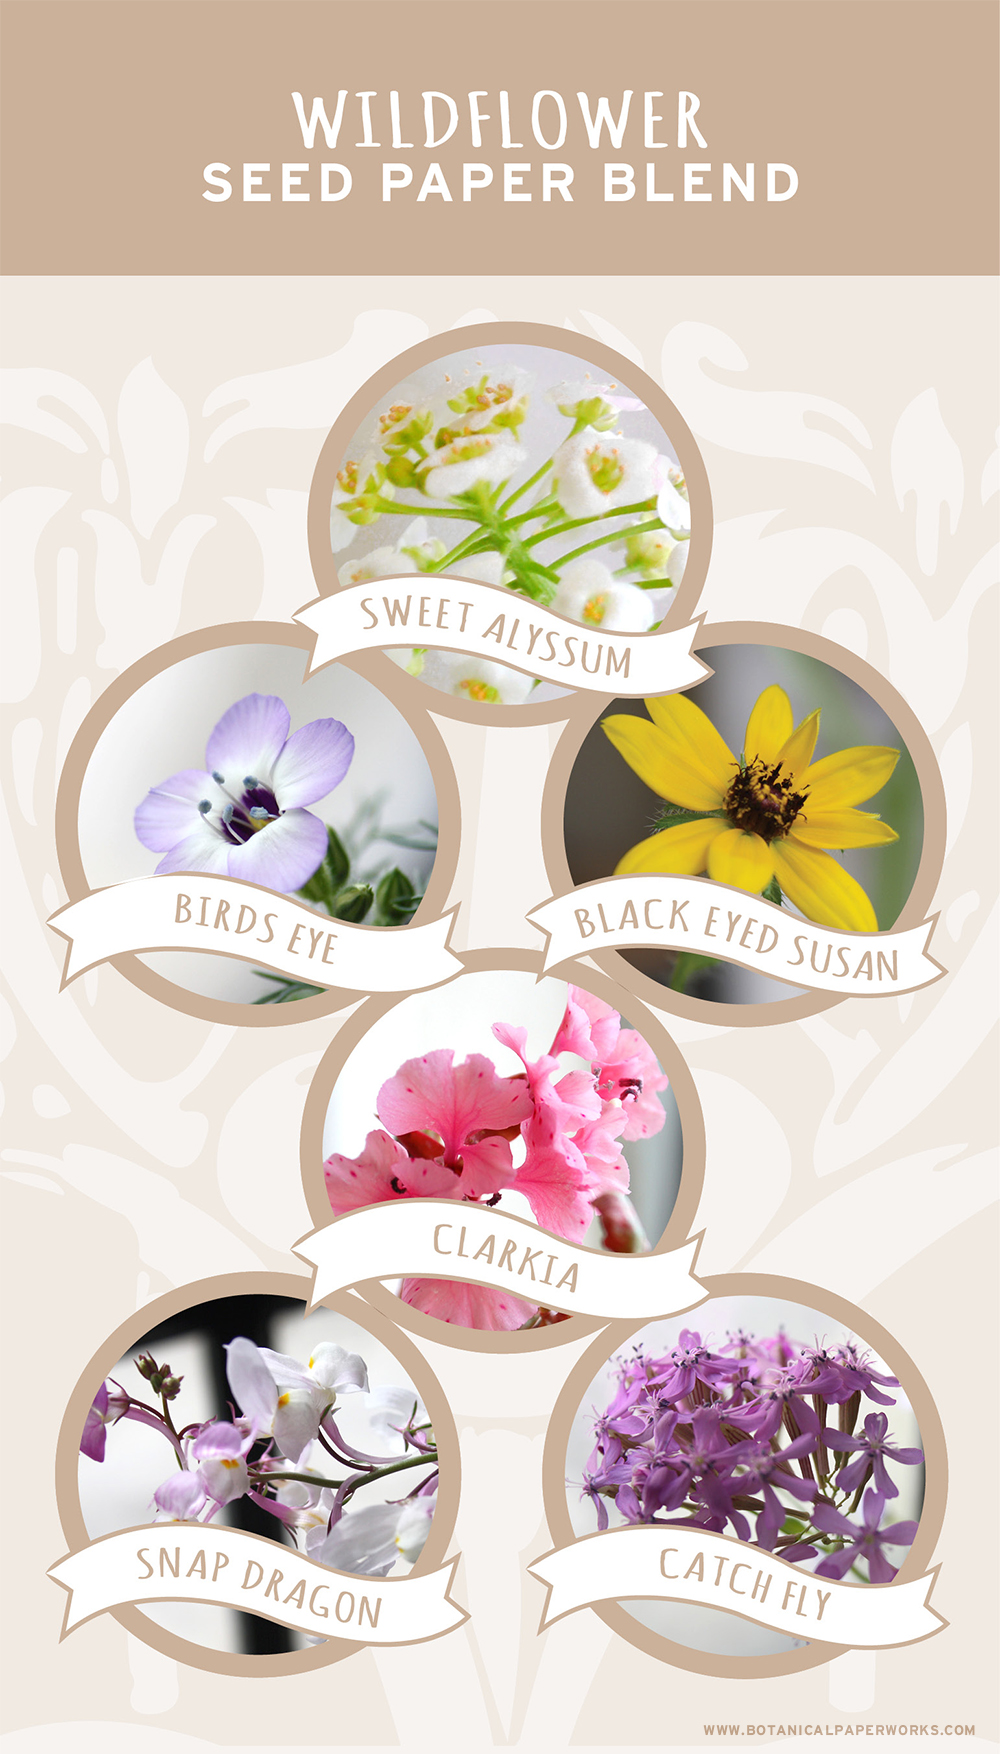 A look at each of the wildflowers you can grow with Botanical PaperWorks seed paper.